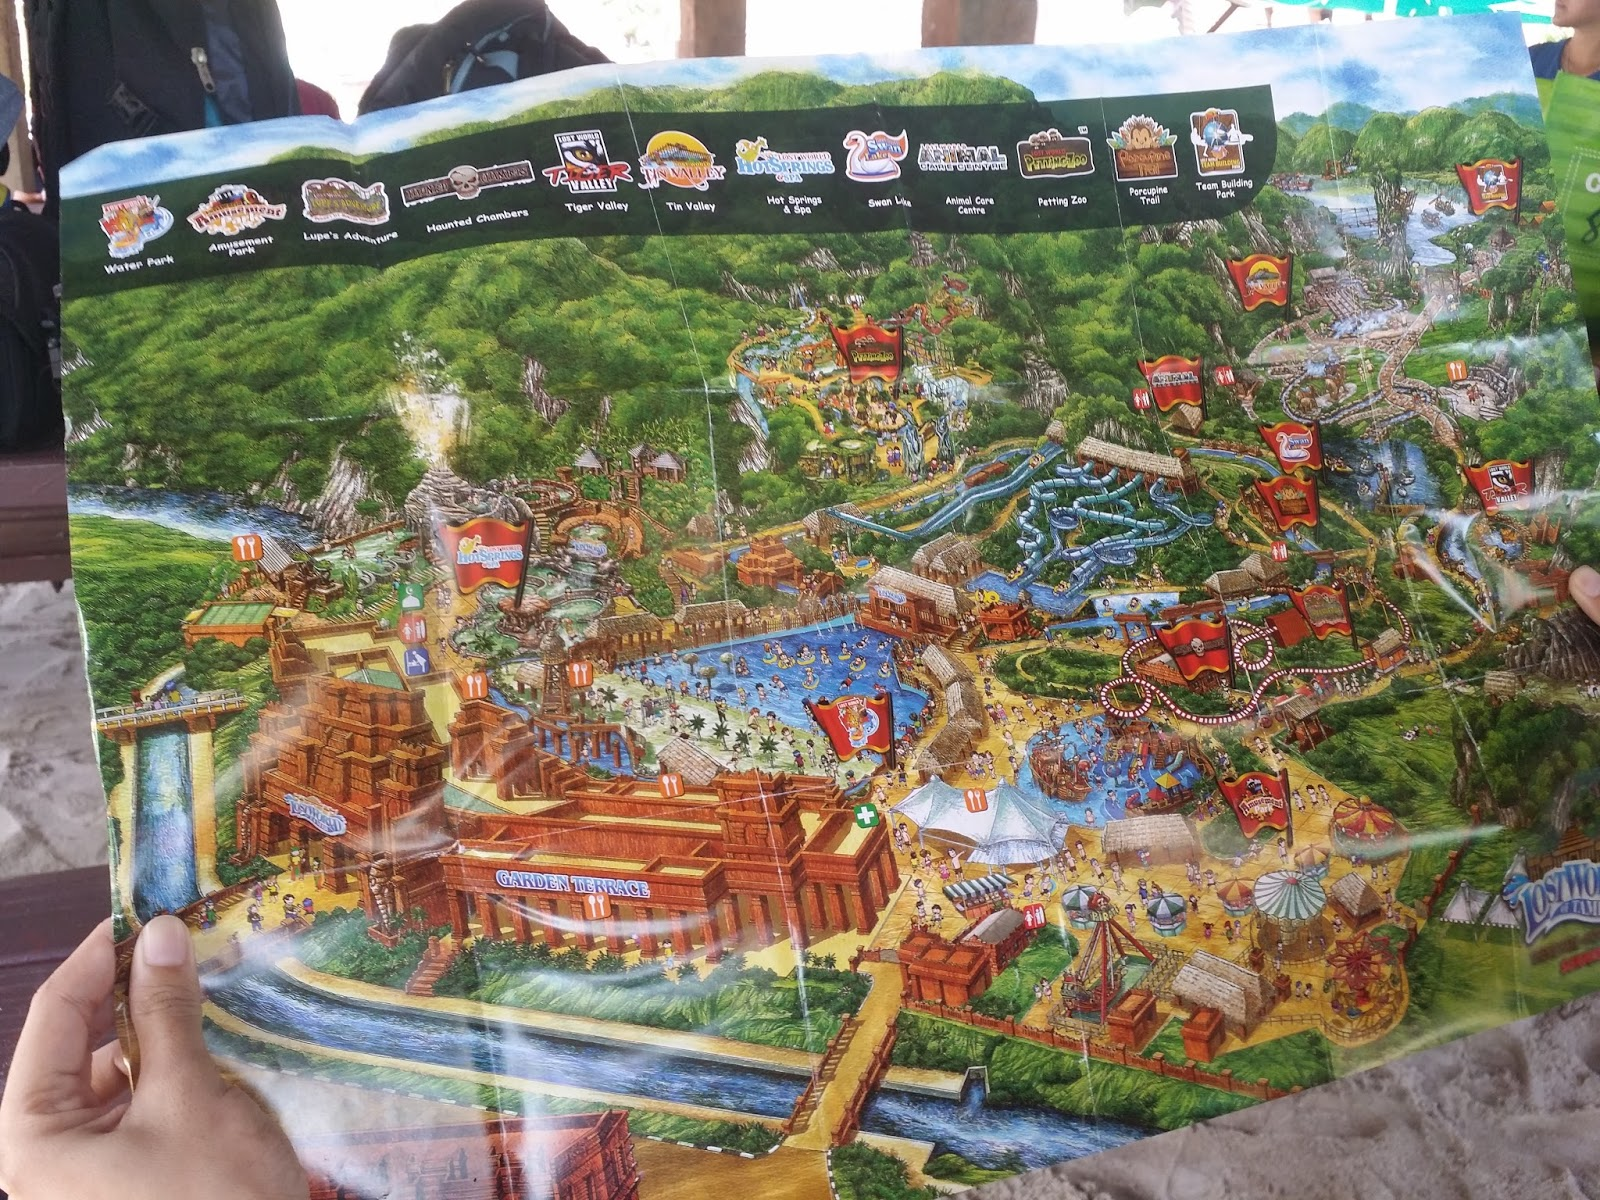 Map to lost world of tambun lost world tambun 1683g 20150725 115244 gumiabroncs Choice Image